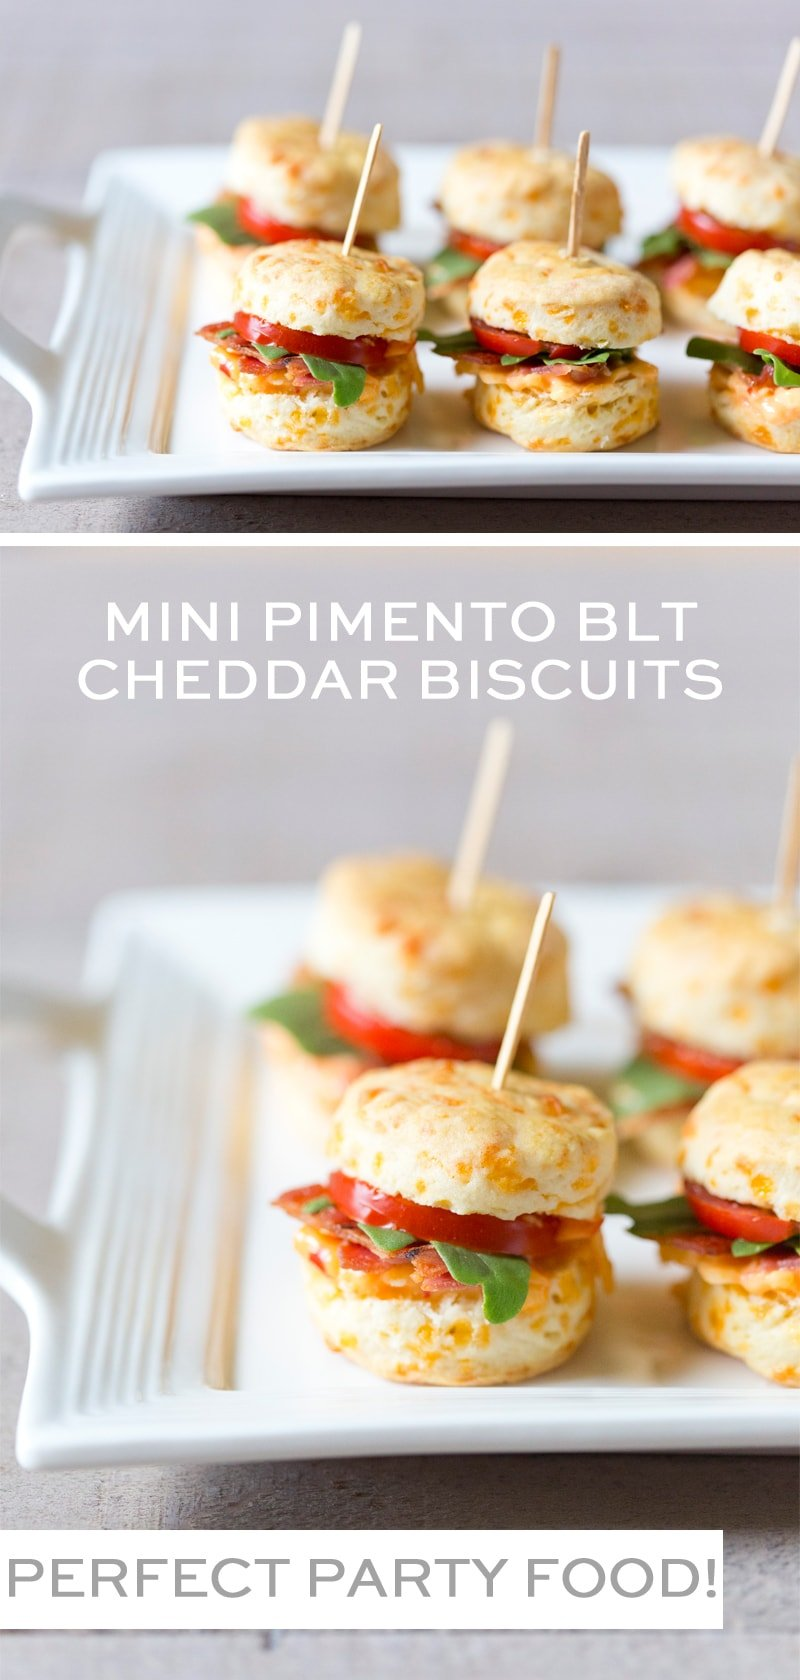 PARTY FOOD: Mini Pimento BLT Cheddar Biscuits